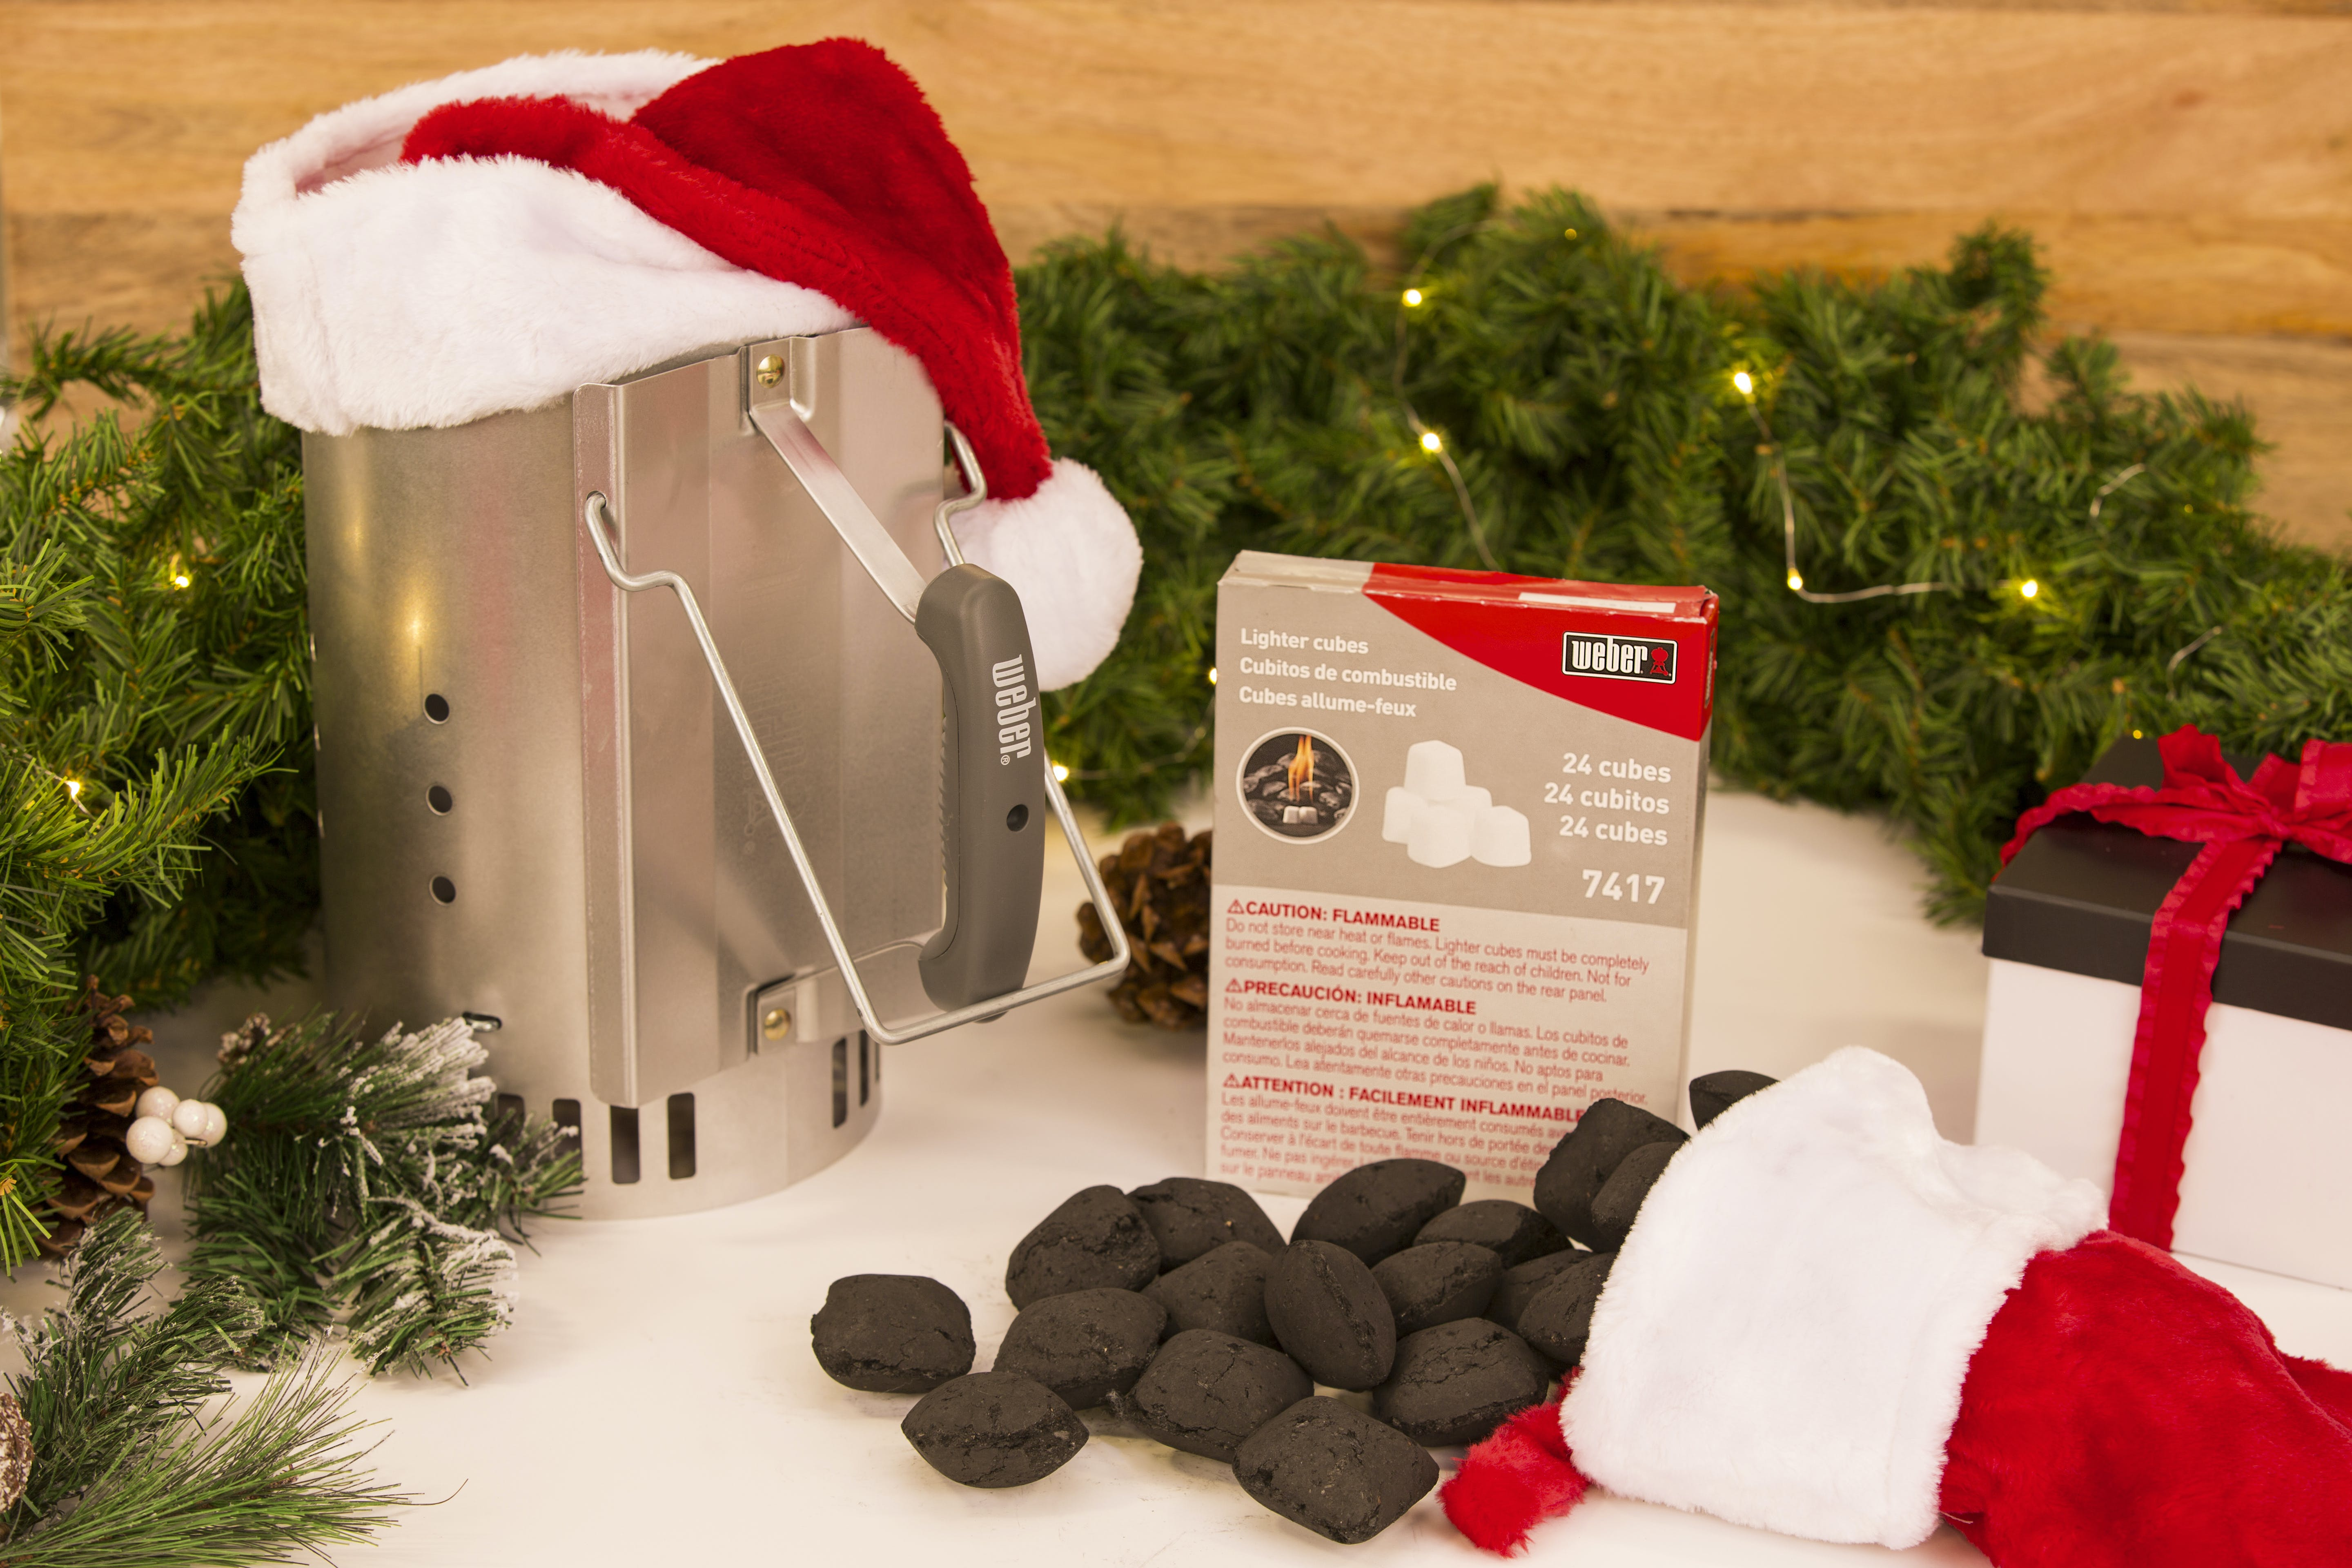 2018 12 Holiday Herriges Gifts For The Charcoal Griller In Your Life Photo Chimney Starter Lightercubes1